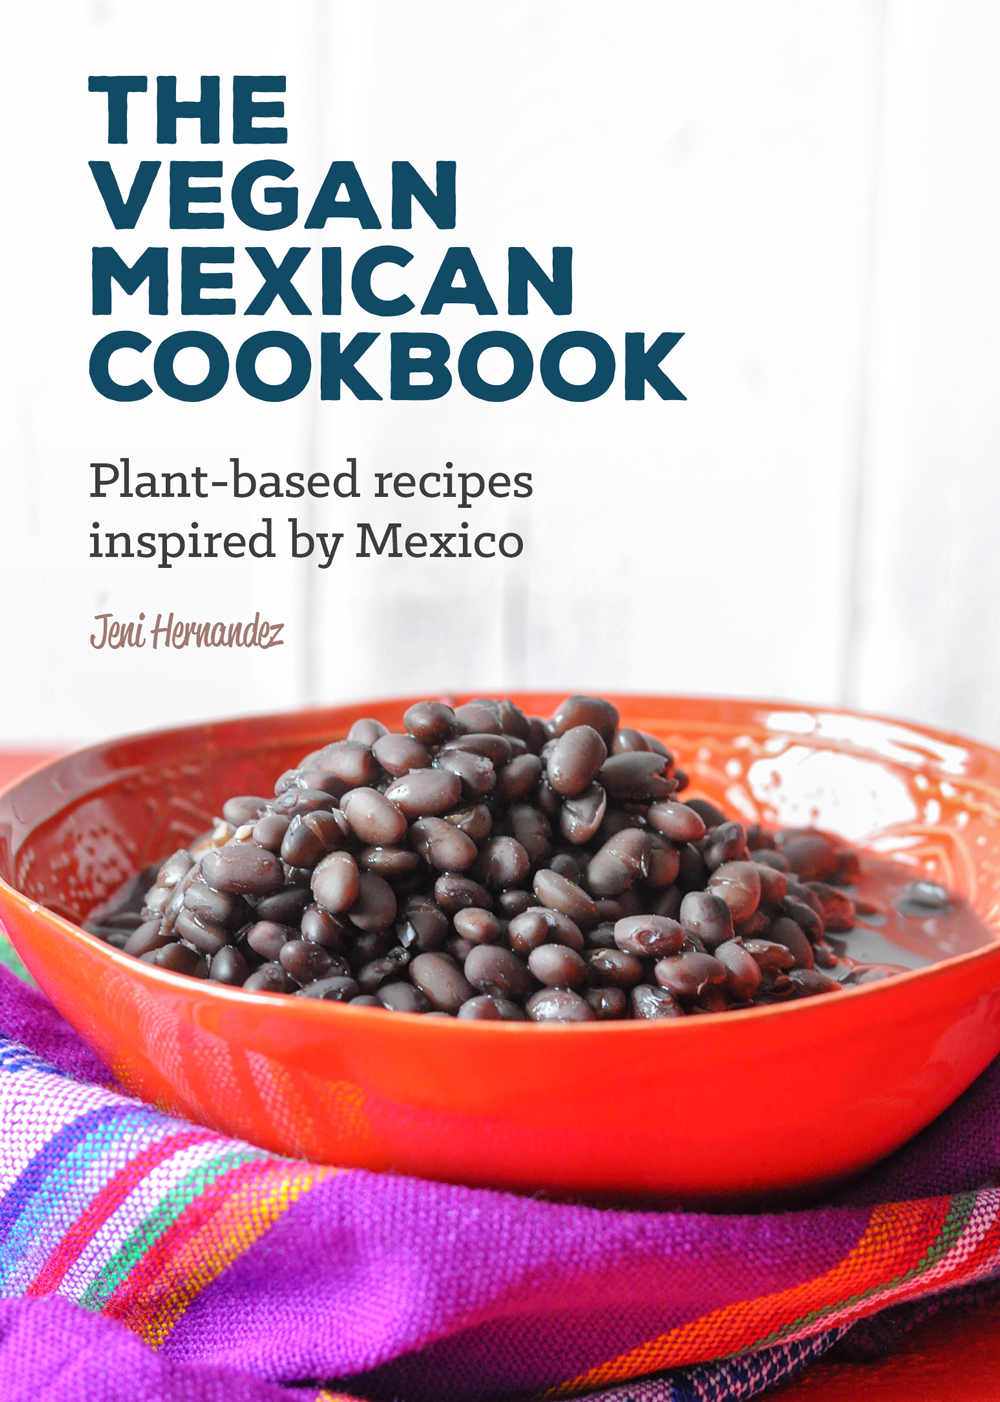 The Vegan Mexican Cookbook is an ebook focused on Vegan recipes inspired by Mexico. From drinks to desserts, there is a wide variety of recipes that will soon become your family's favorites! #cookbook #vegan #mexican